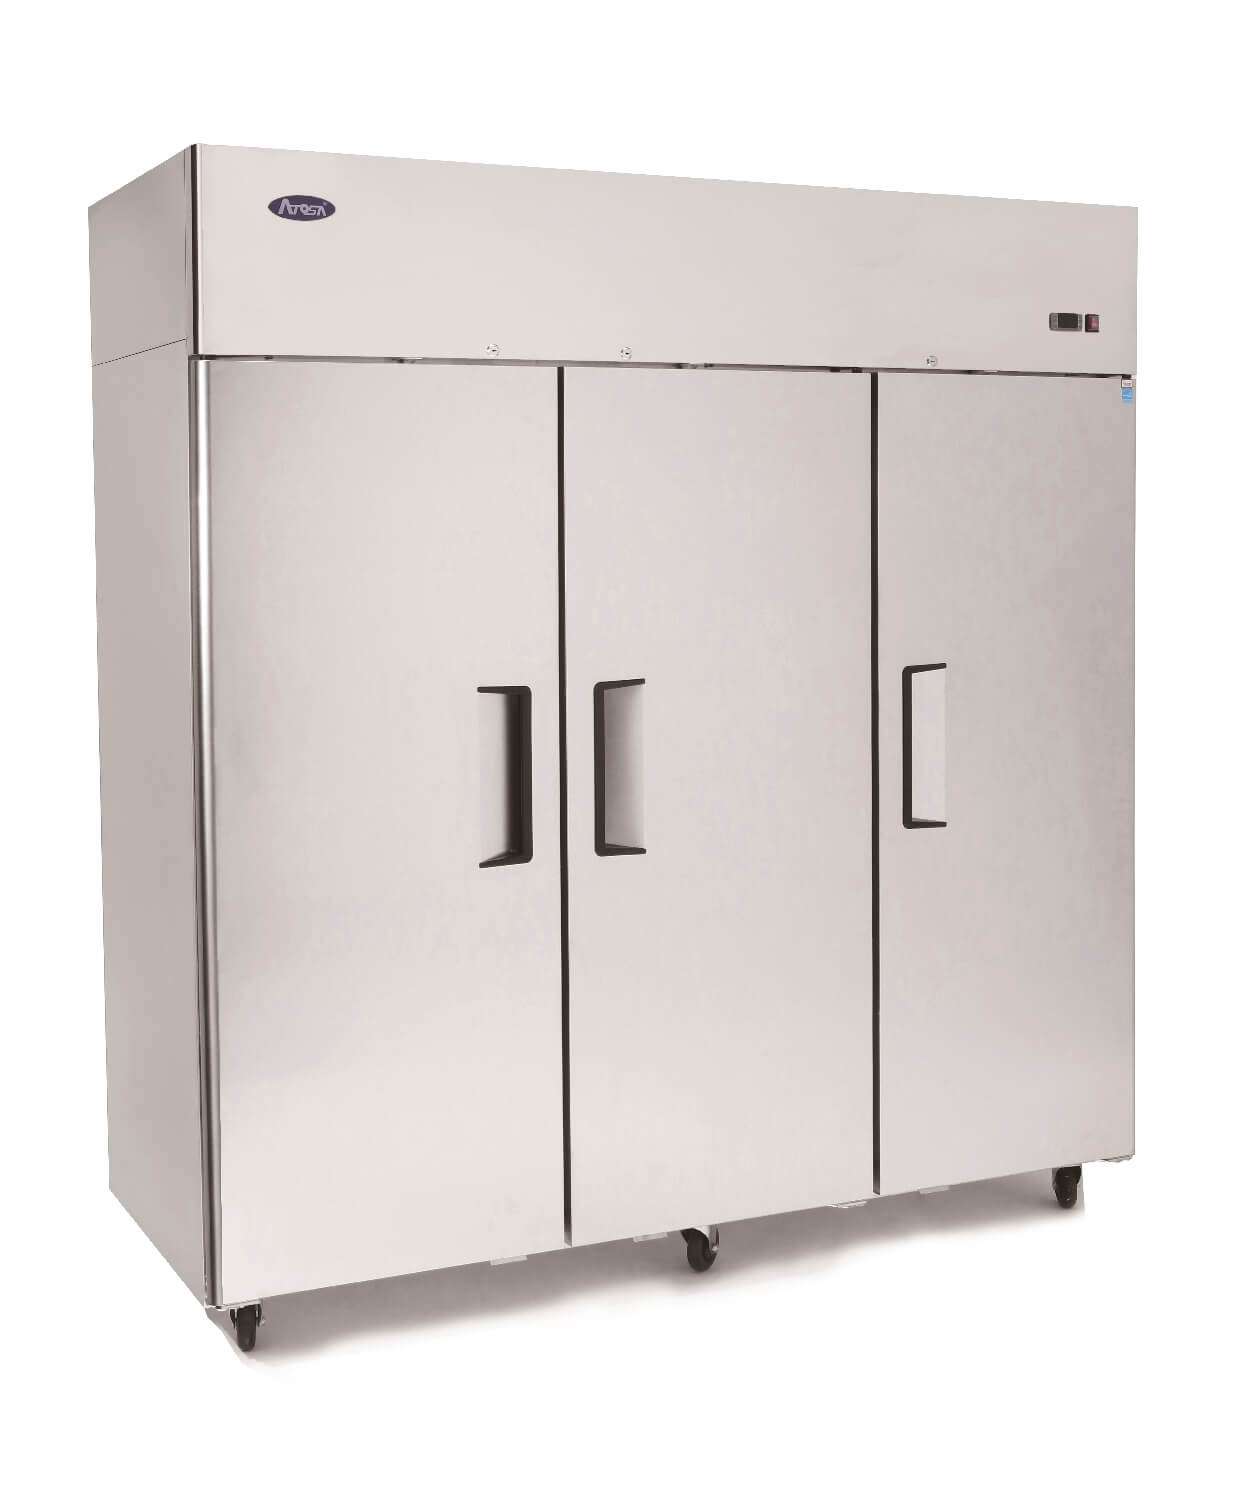 Atosa MBF8003 Top Mounted 3 Door Freezer 1976 mm